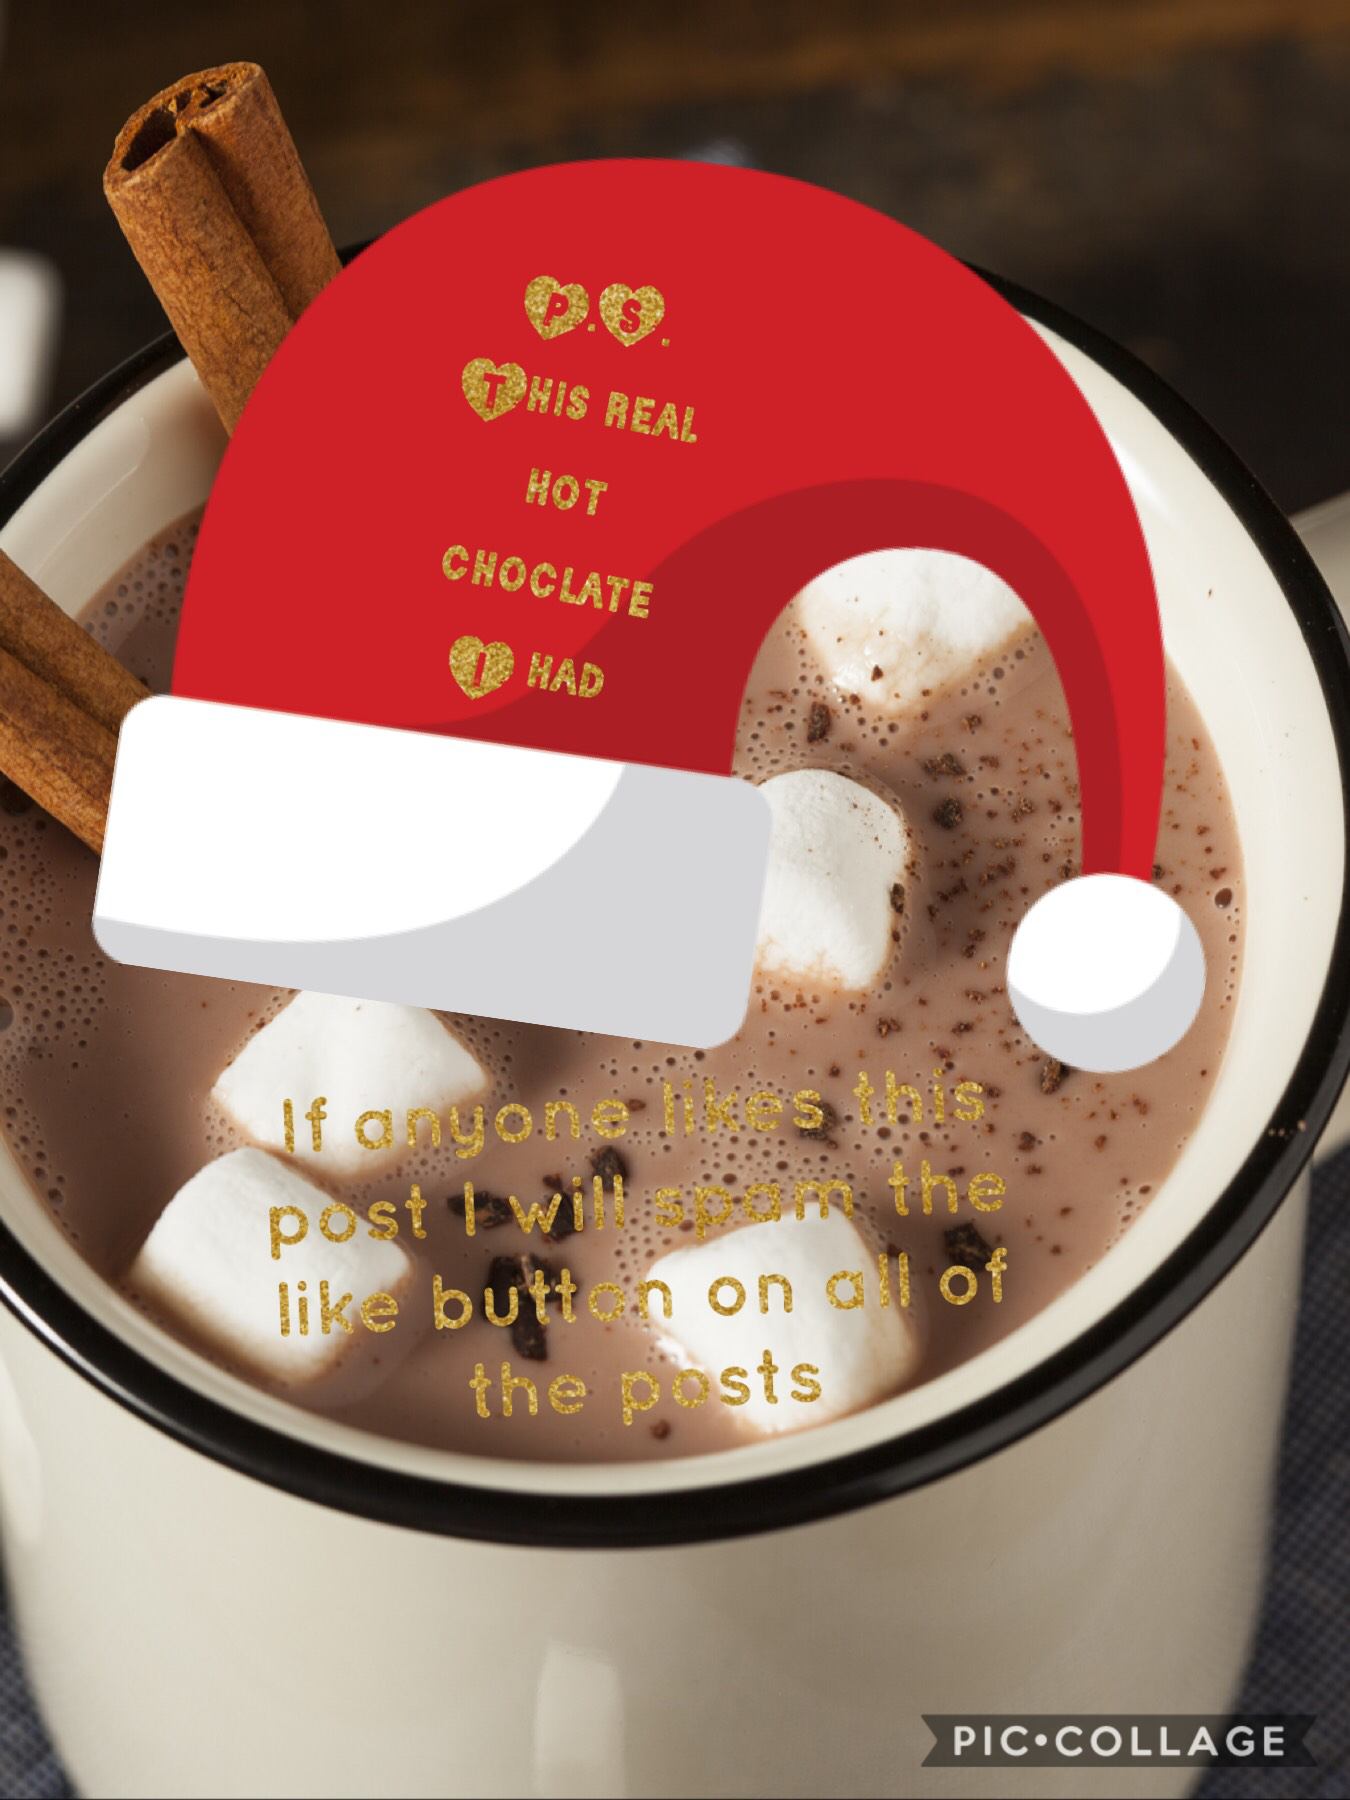 Hot choclate that I had in real life